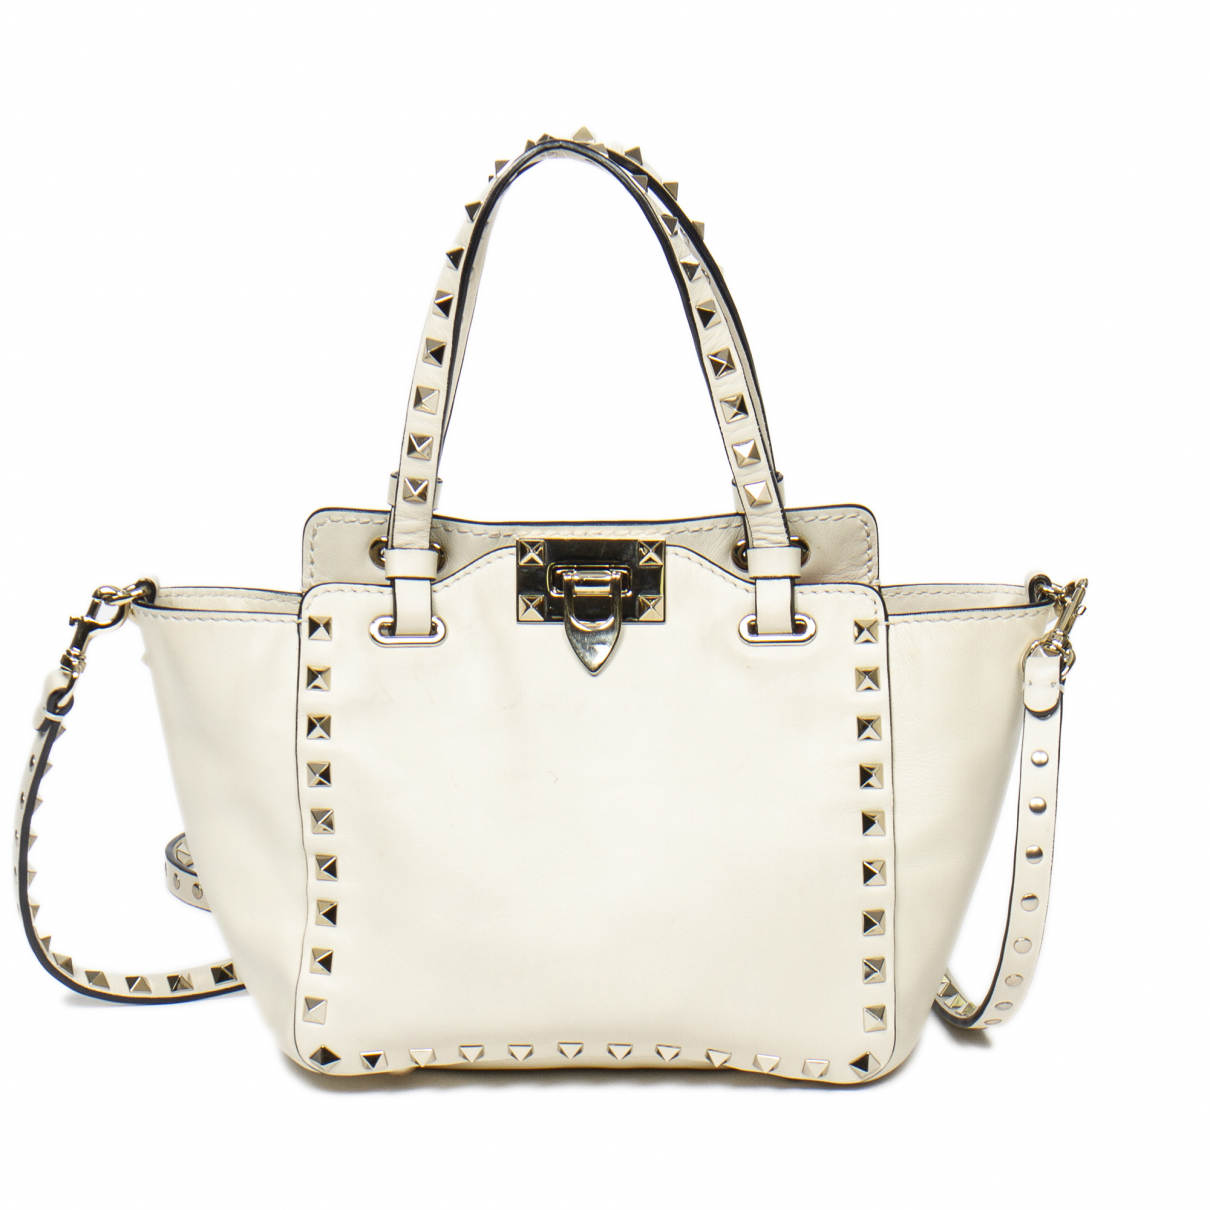 Valentino Garavani \N Beige Leather handbag for Women \N